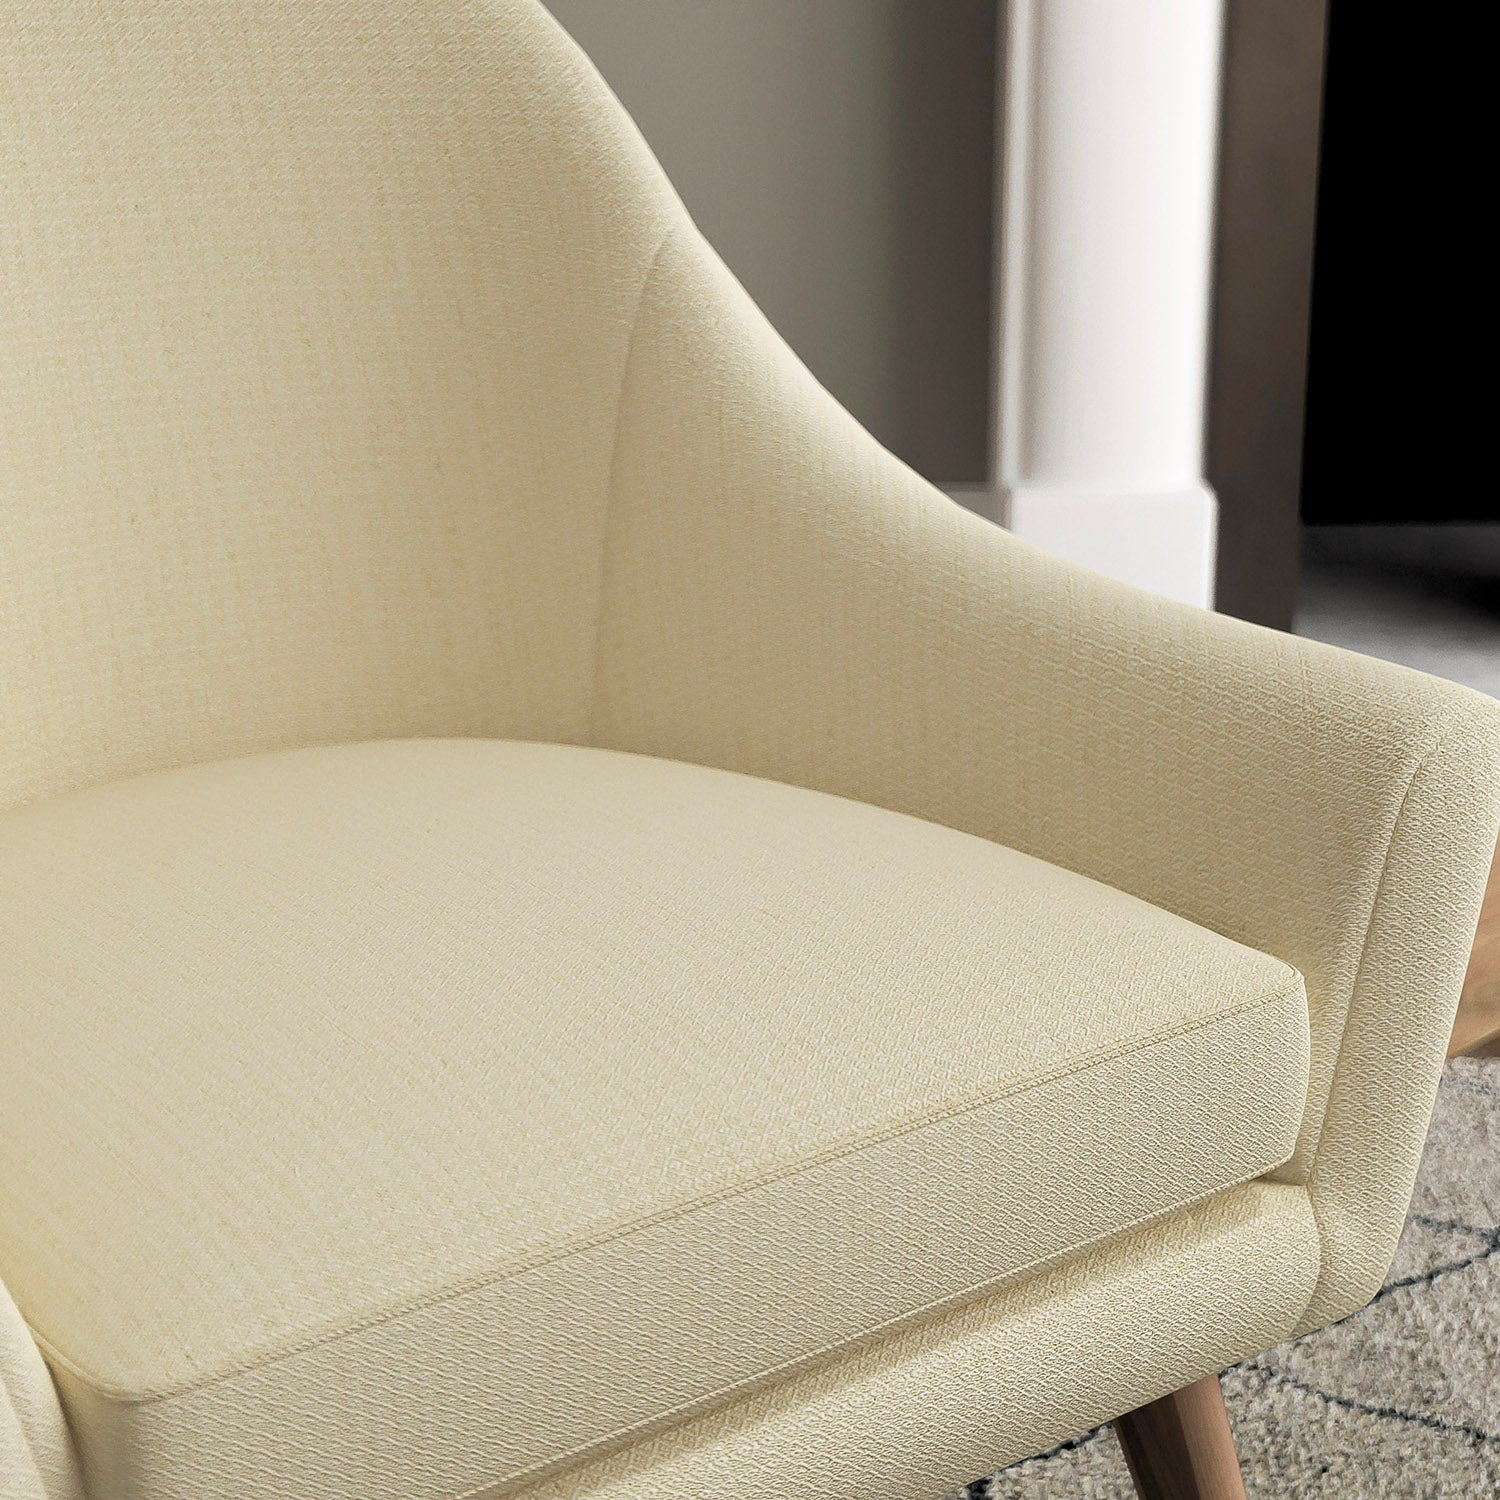 Chair with a neutral upholstery fabric with a small diamond weave fabric